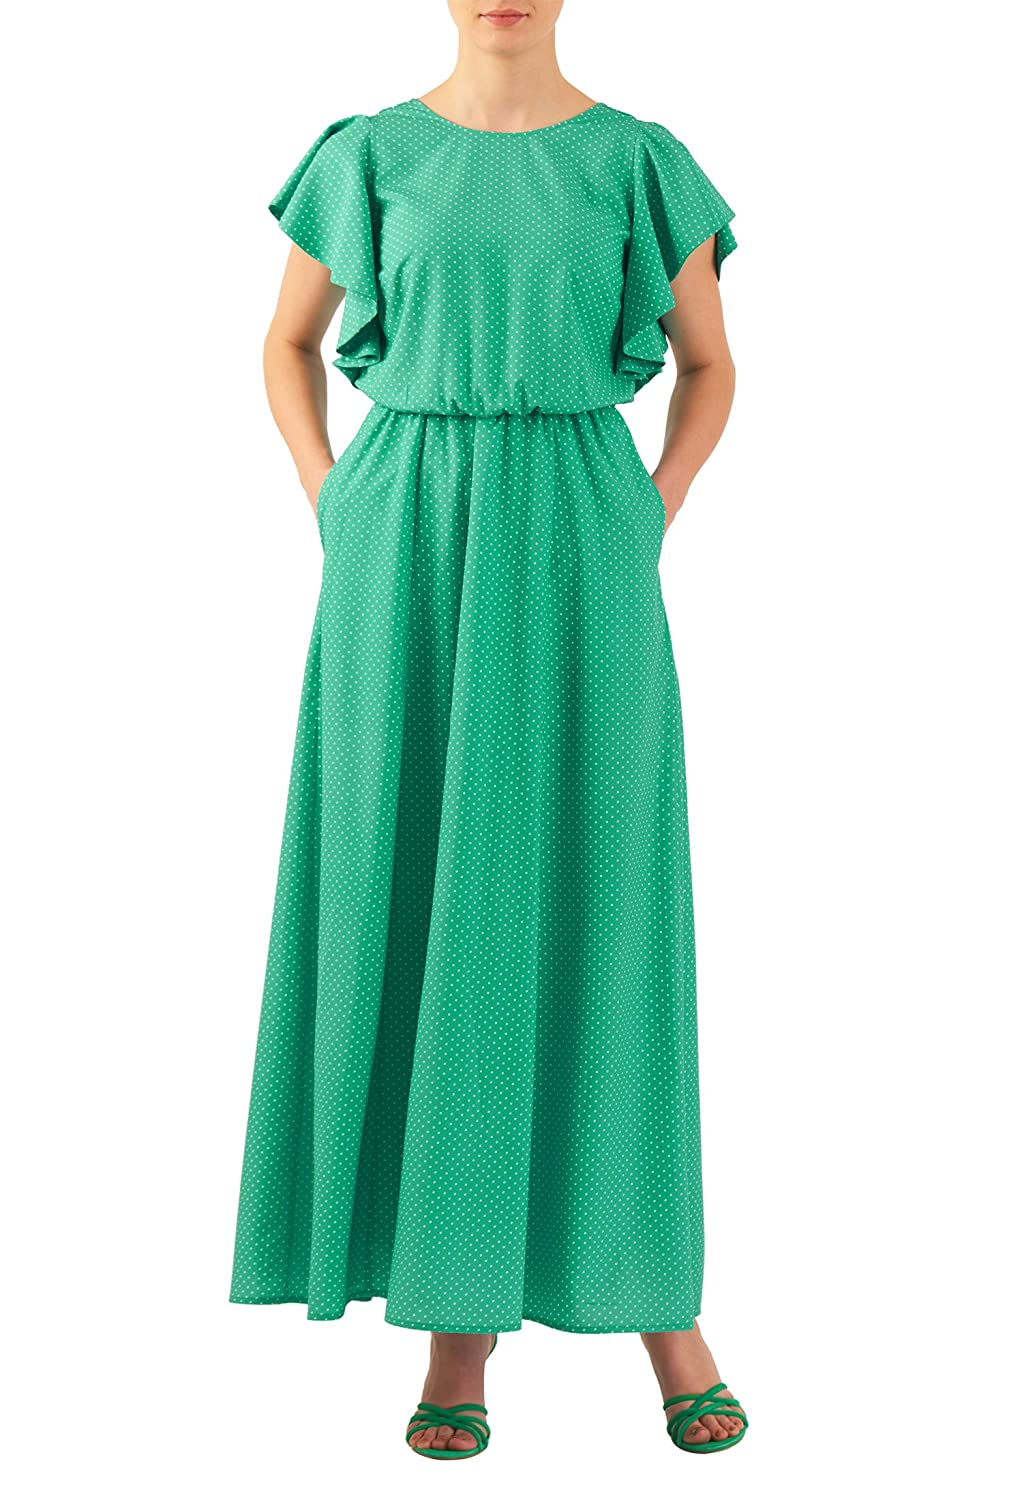 1930s Day Dresses, Afternoon Dresses History eShakti Womens Custom Flutter sleeve dot print crepe maxi dress Green/white $62.95 AT vintagedancer.com